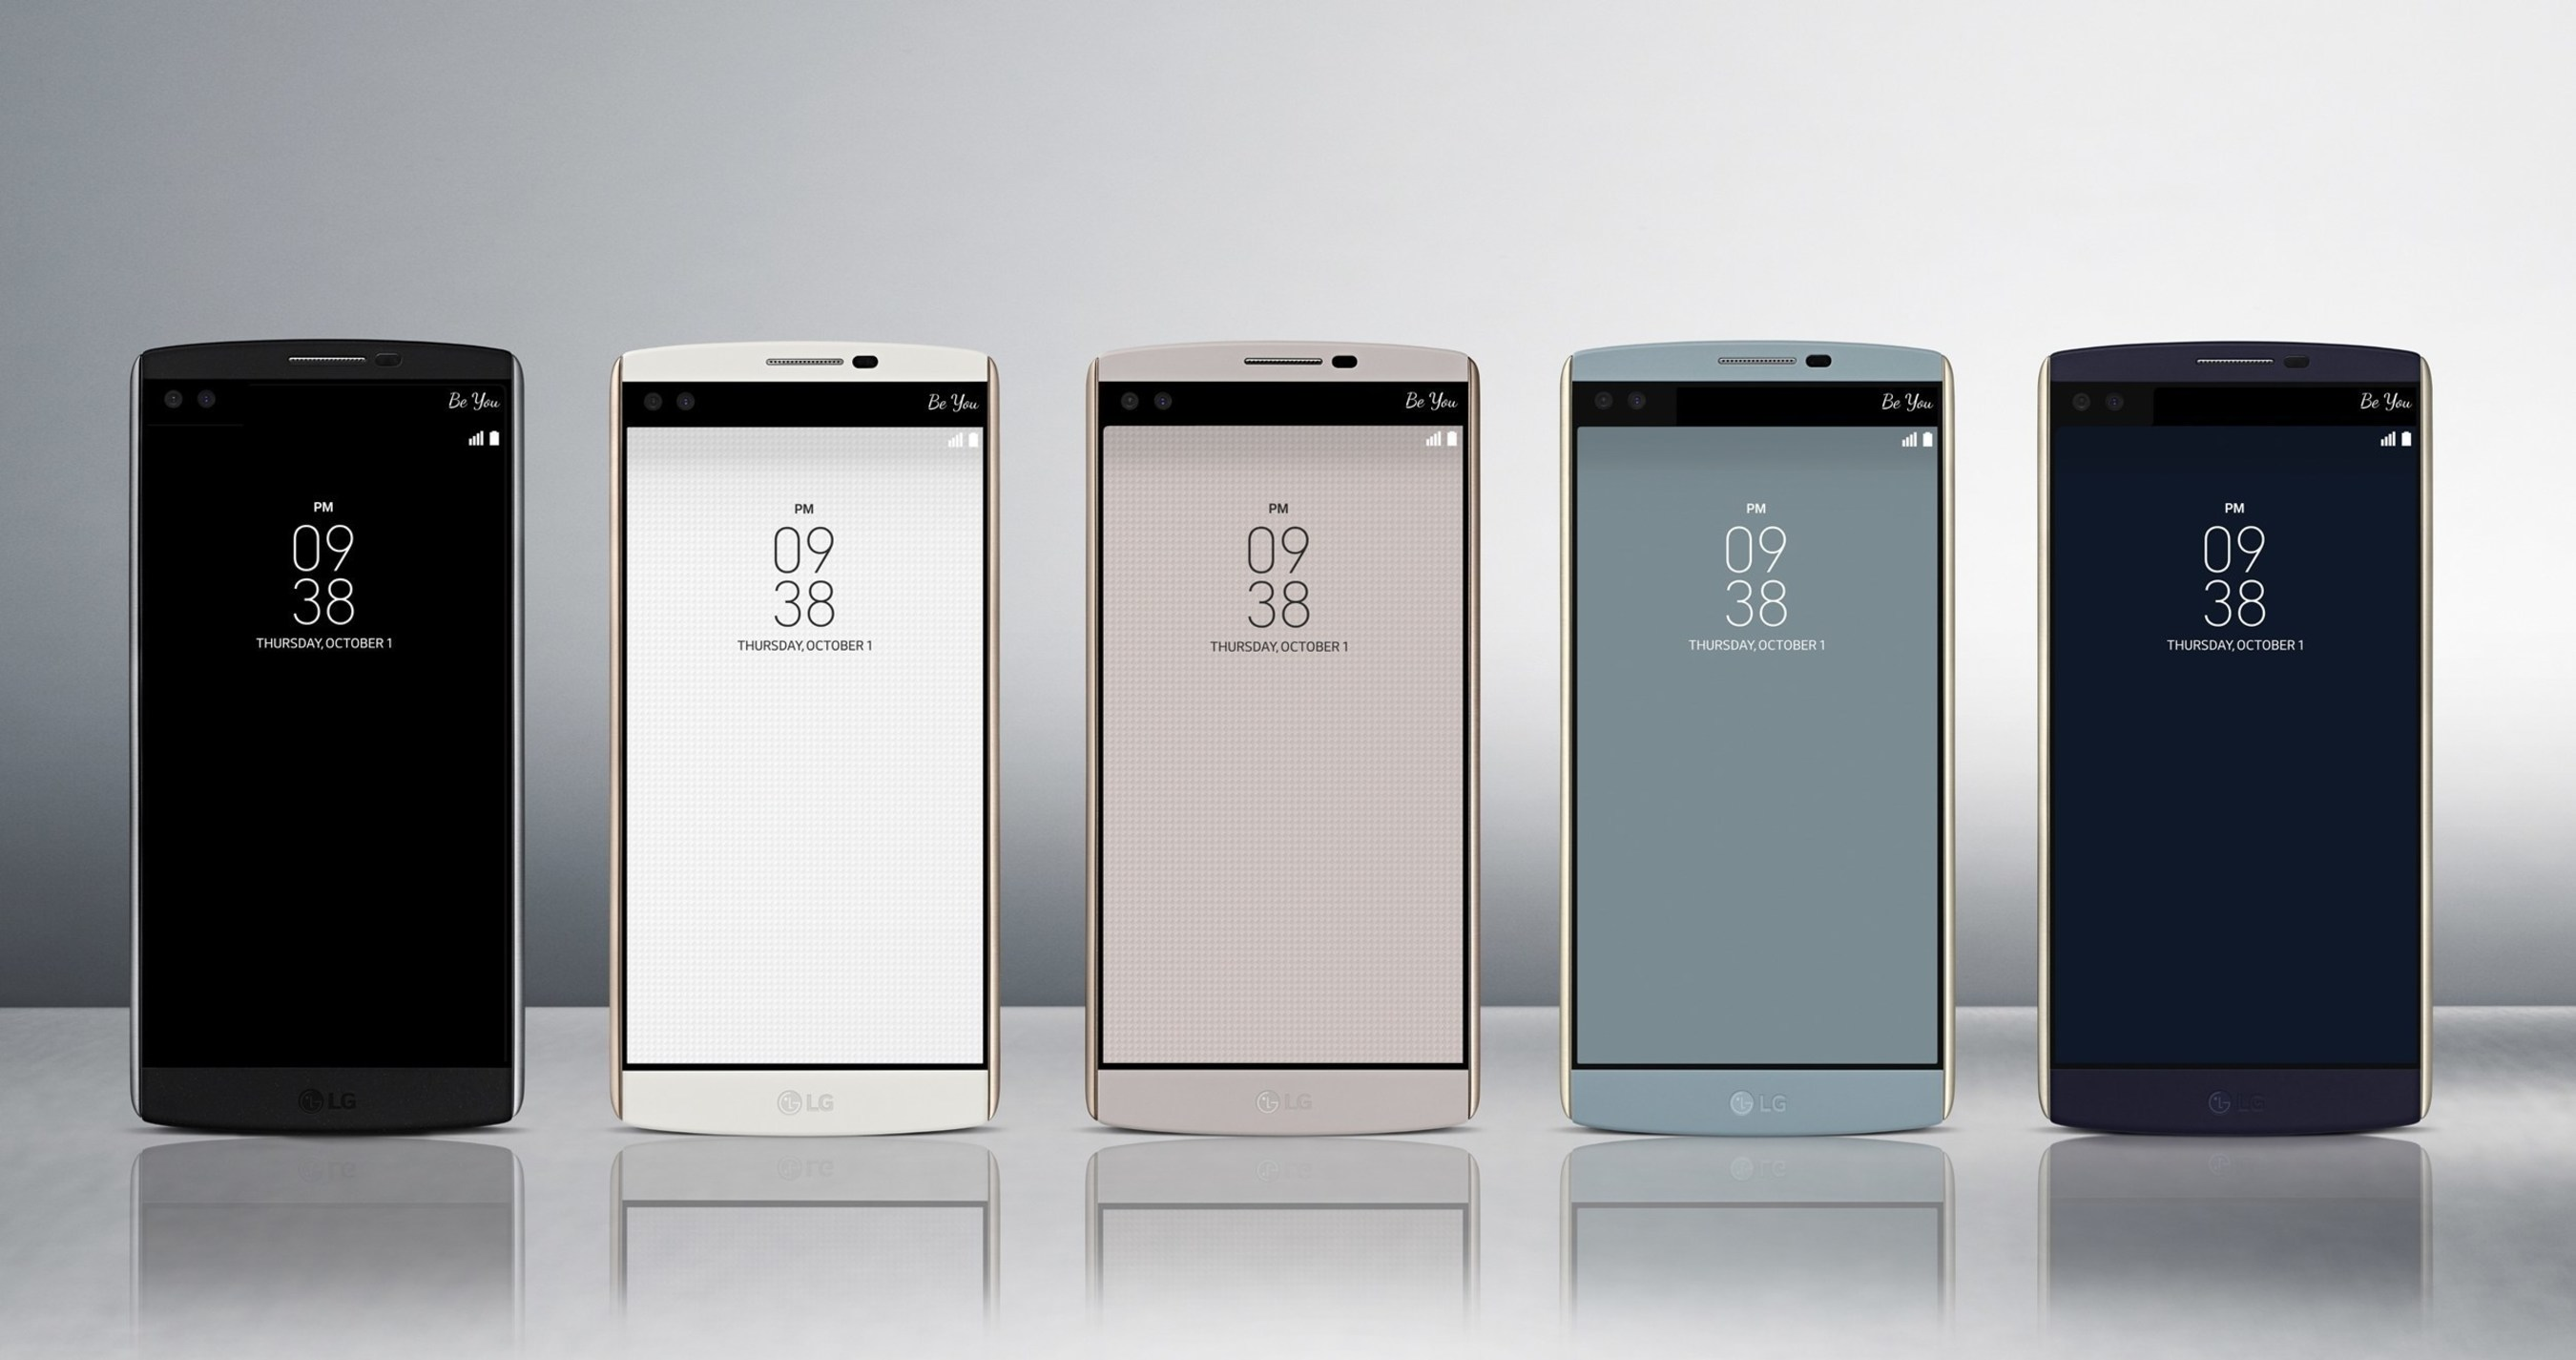 LG Unveils V10 Smartphone, Designed With Creativity In Mind